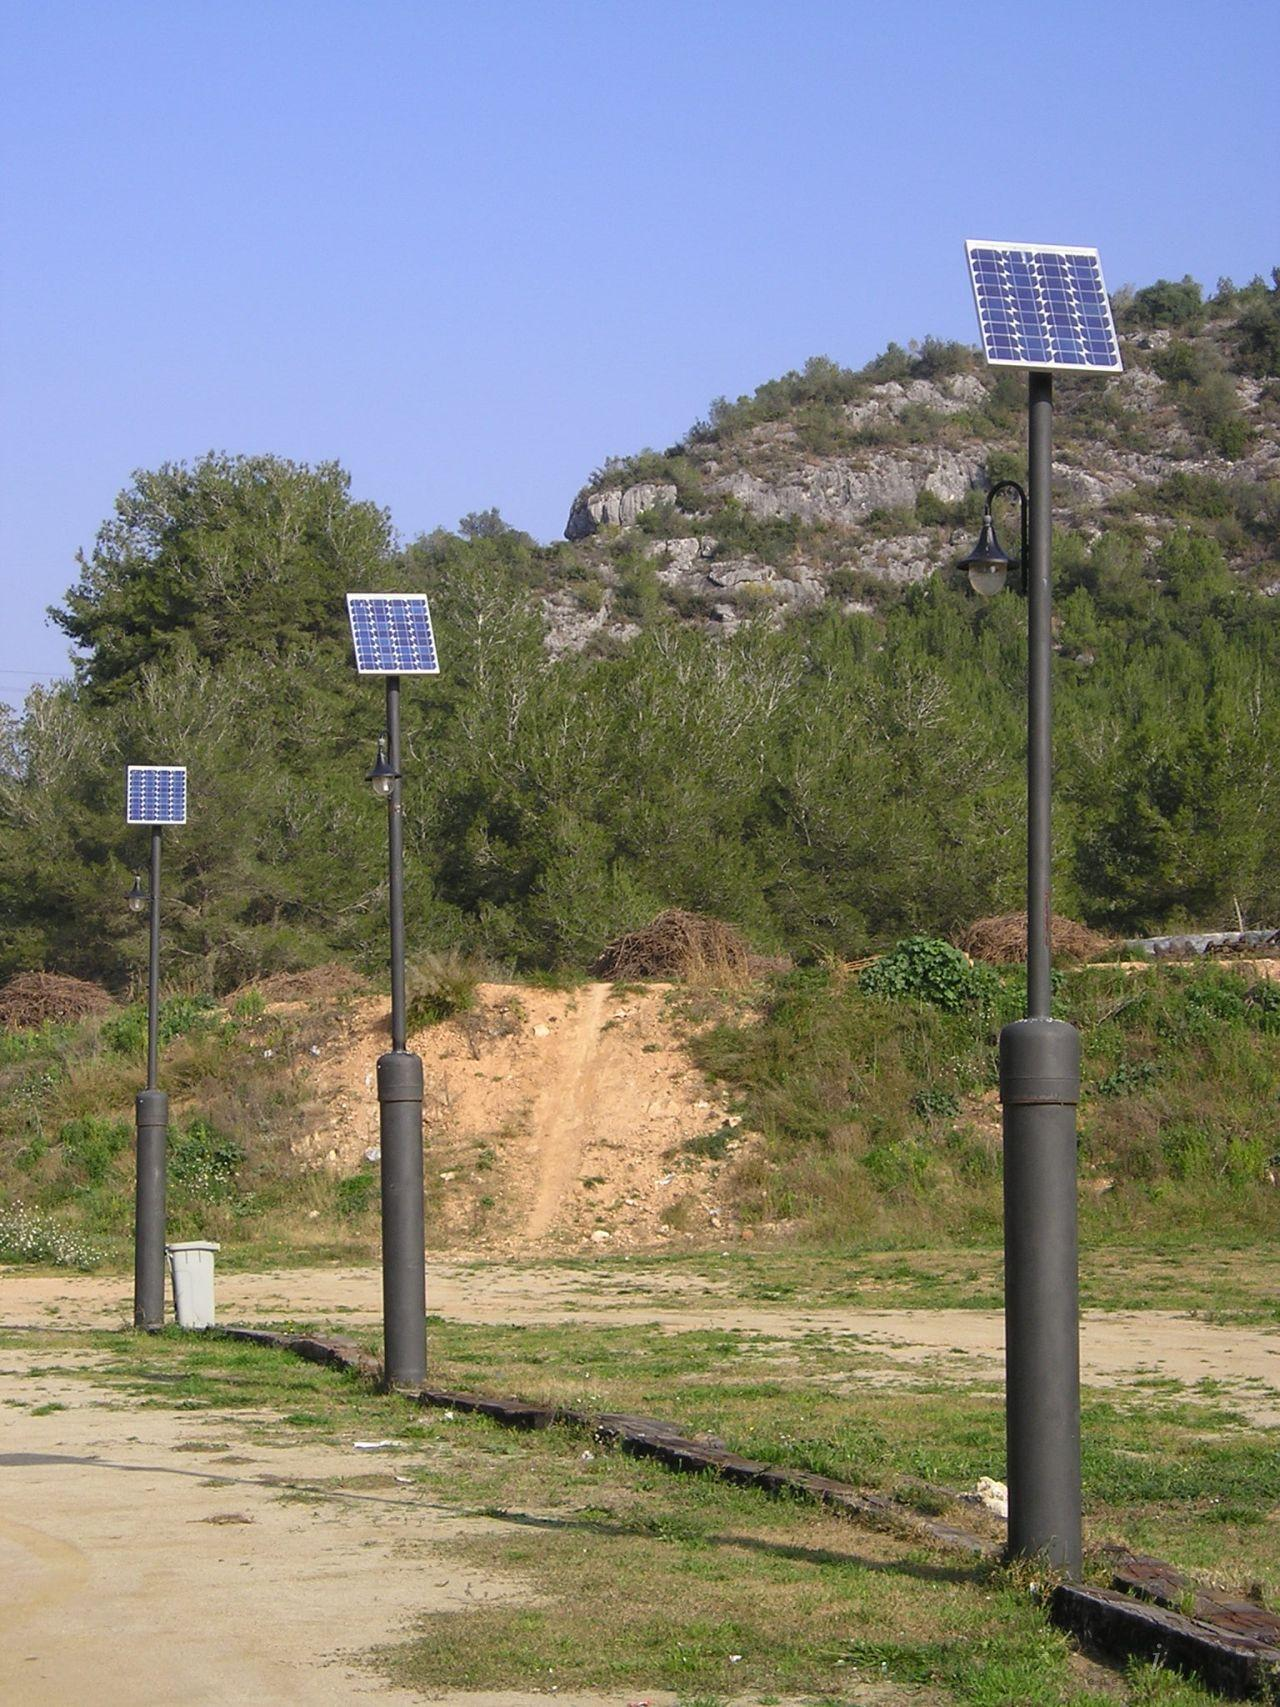 Public lighting using photovoltaic energy